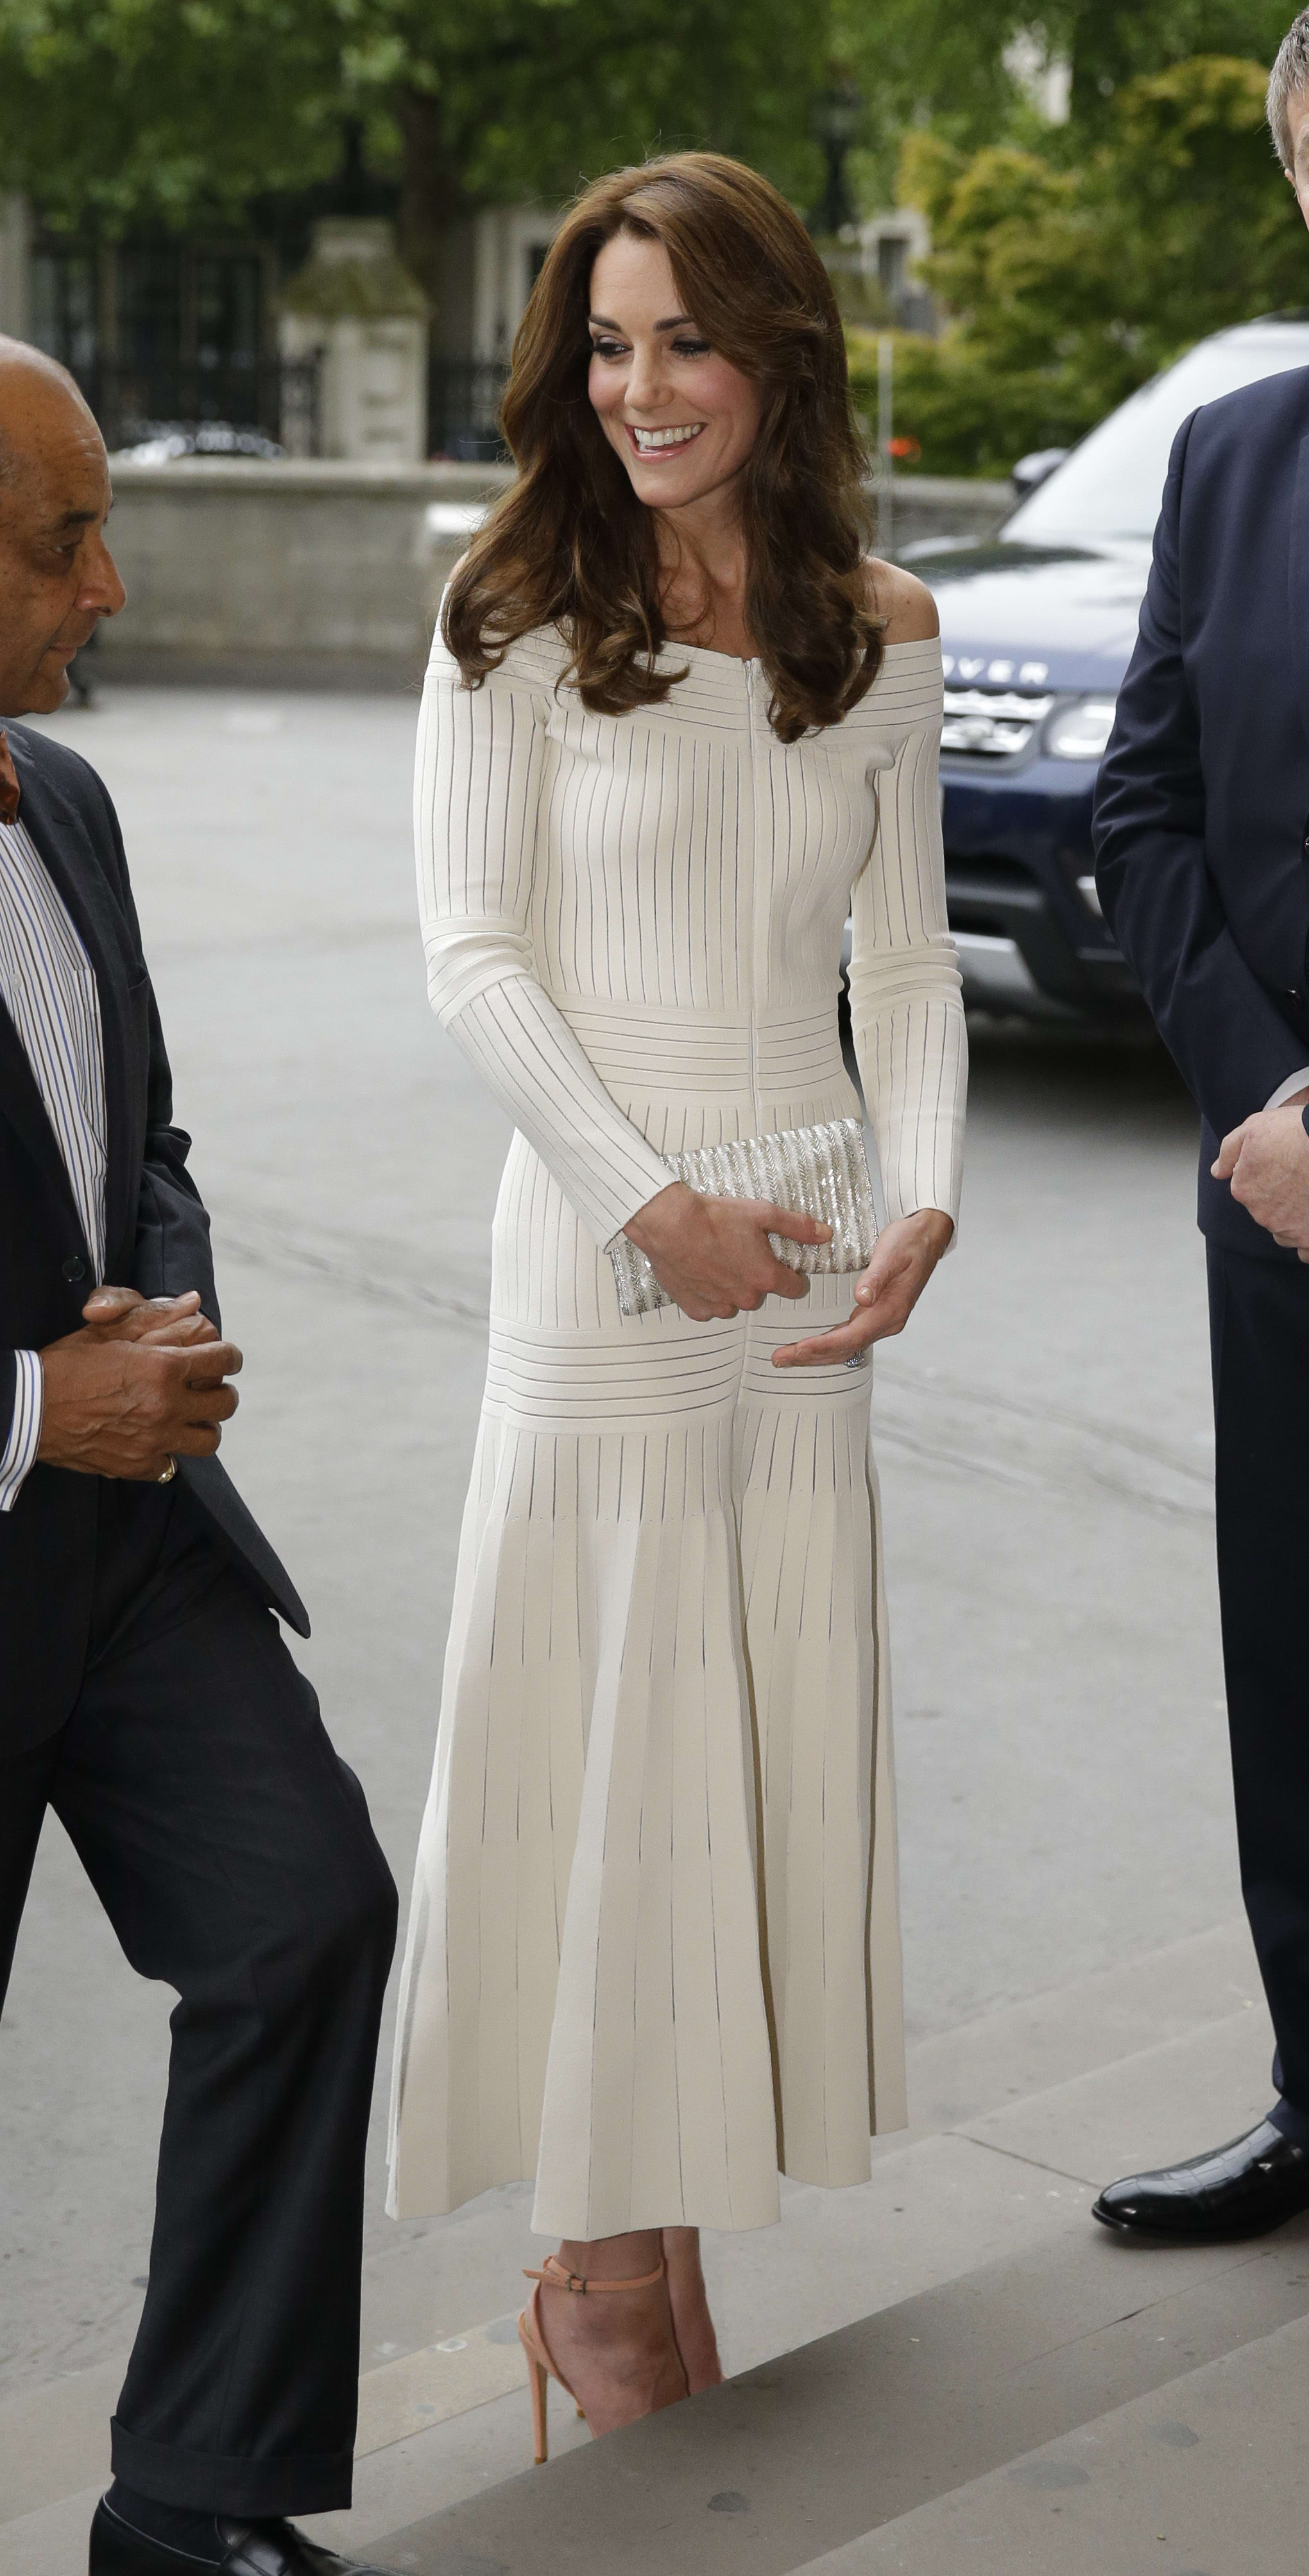 6856d5129bcf42 Kate Middleton Wardrobe Malfunction: Duchess Dressed Inappropriately For  Kids' Party?